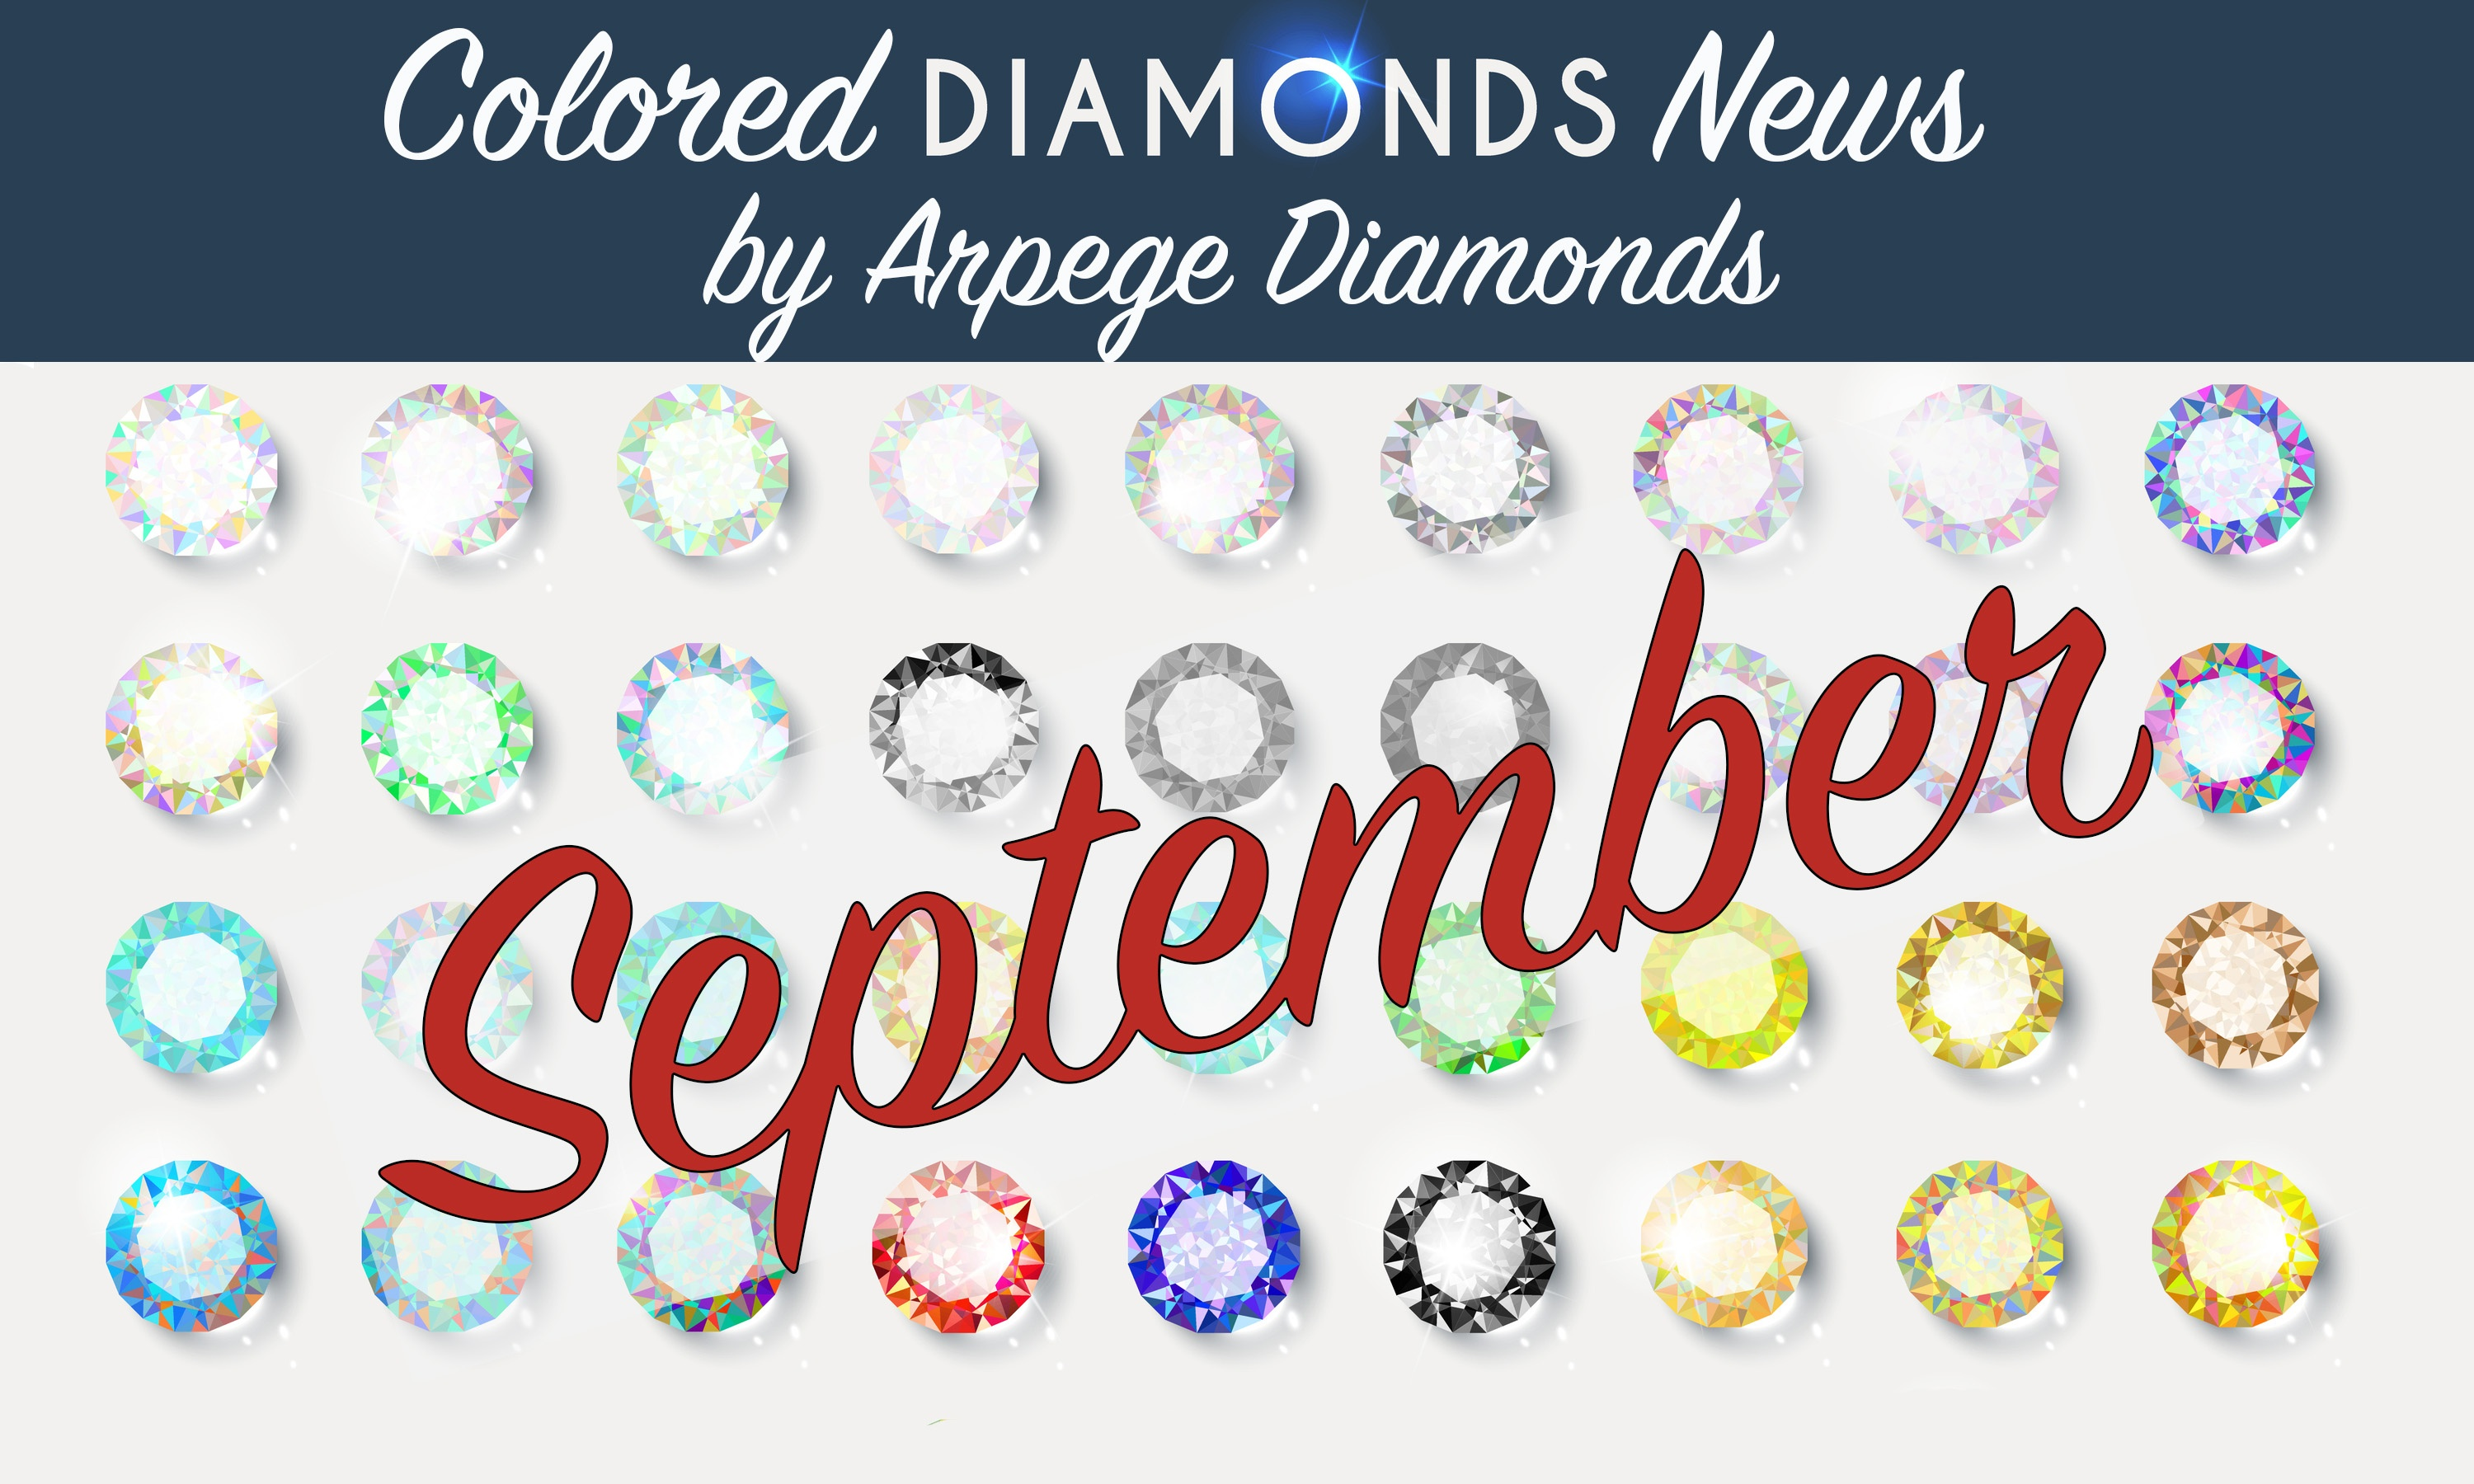 colored_diamonds_news_september_final.jpg